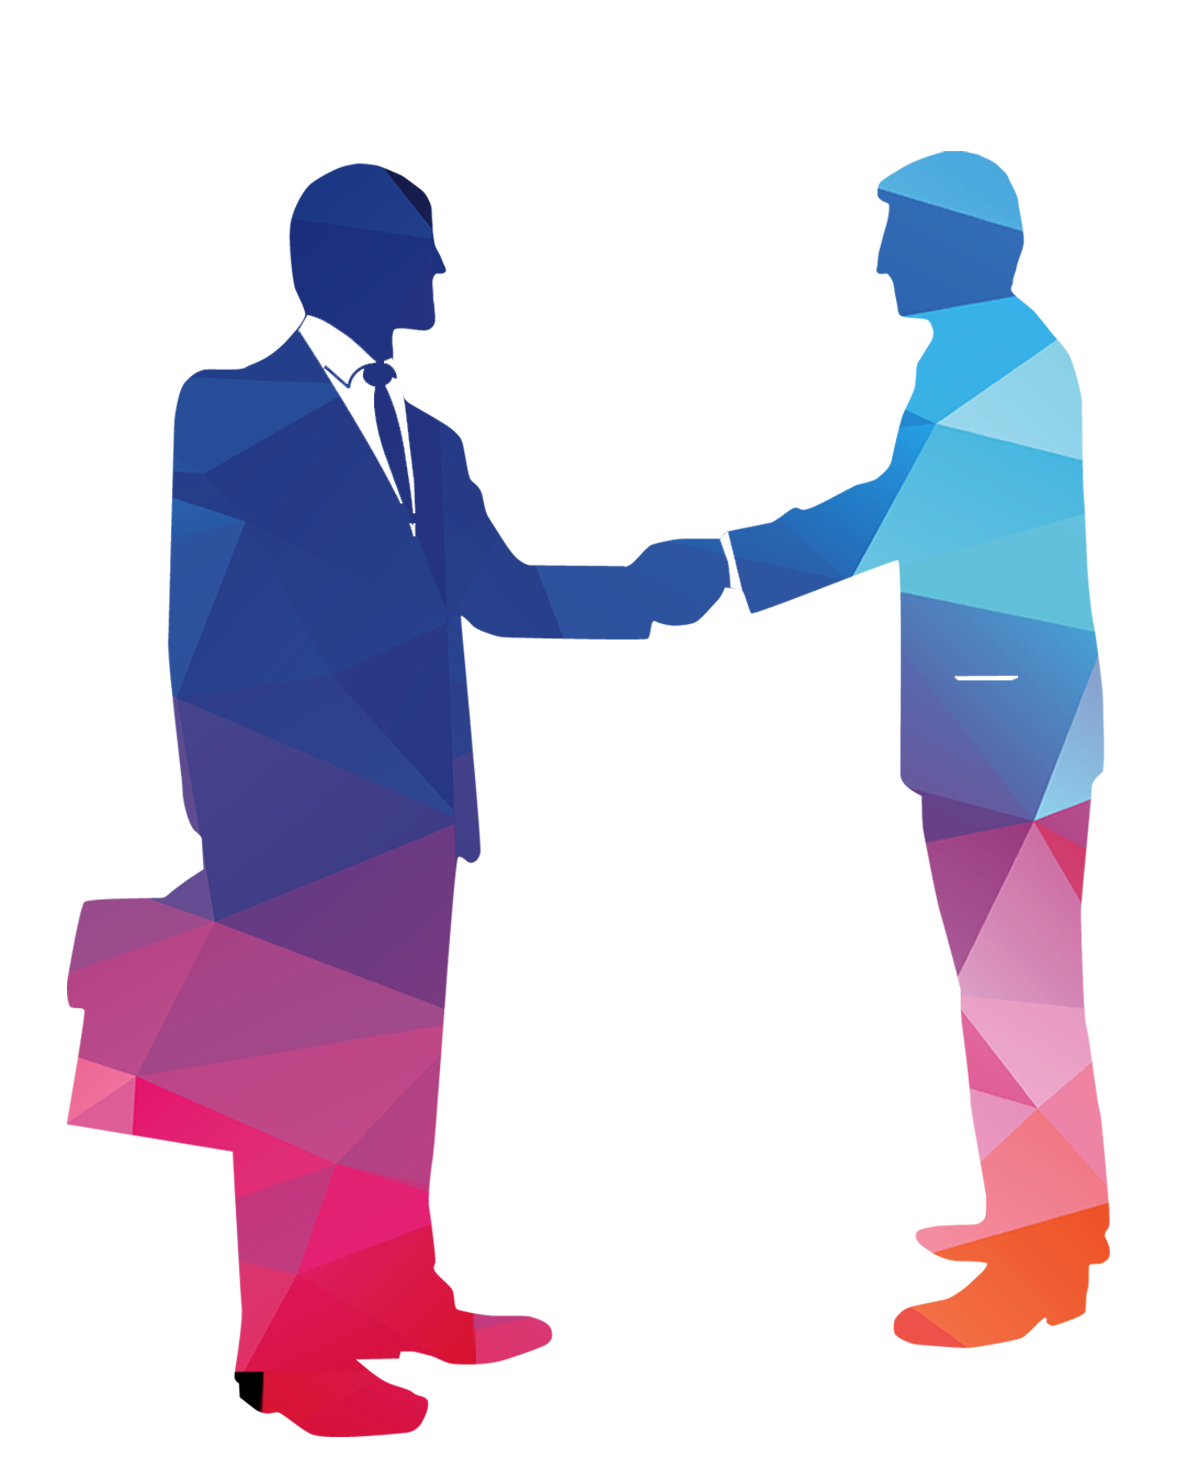 World wide web business. Collaboration clipart cooperation